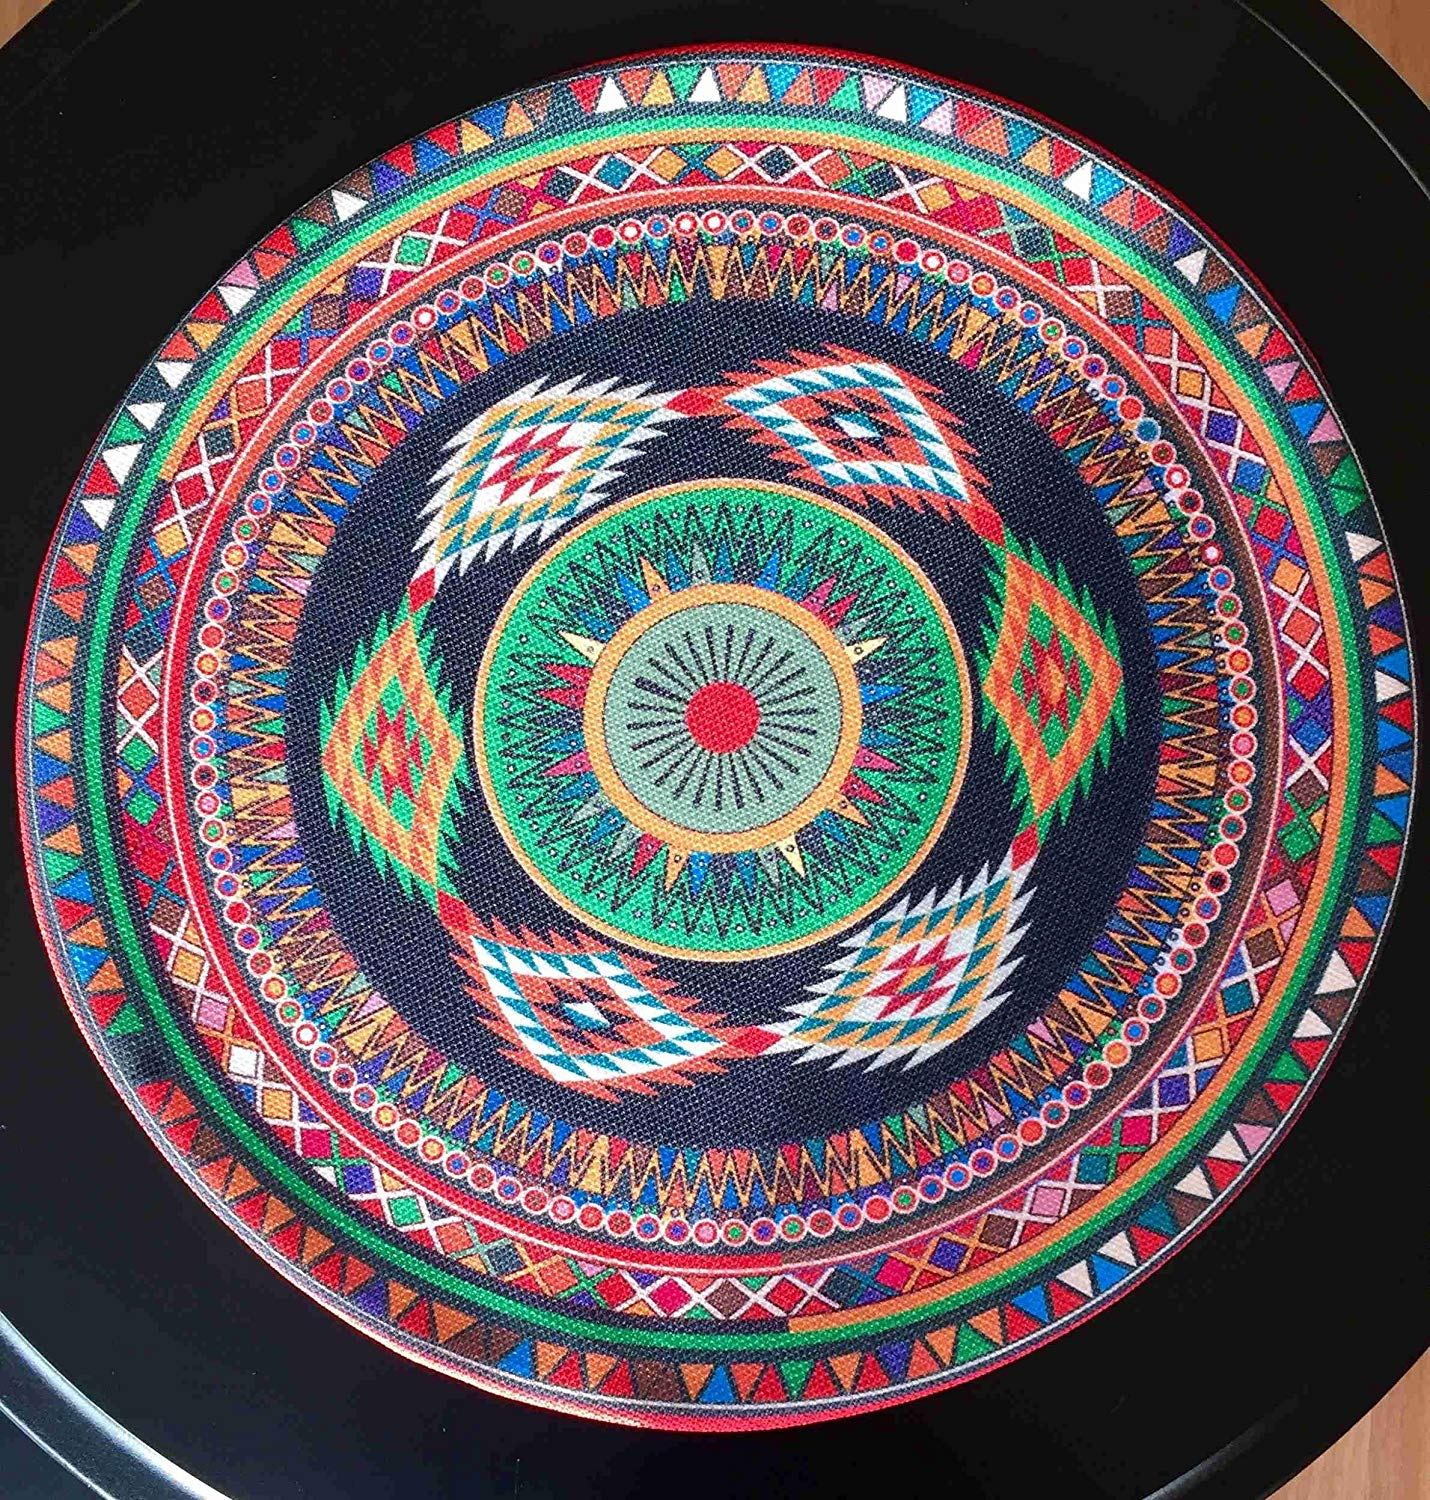 "TekgulDesign Egypt Placemats,%100 Polyester, Handmade, Diameter: 35cm (14""), Crease Resistant and Stain-Proof Fabric, Modern and Colorful Ultra HD Graphics."